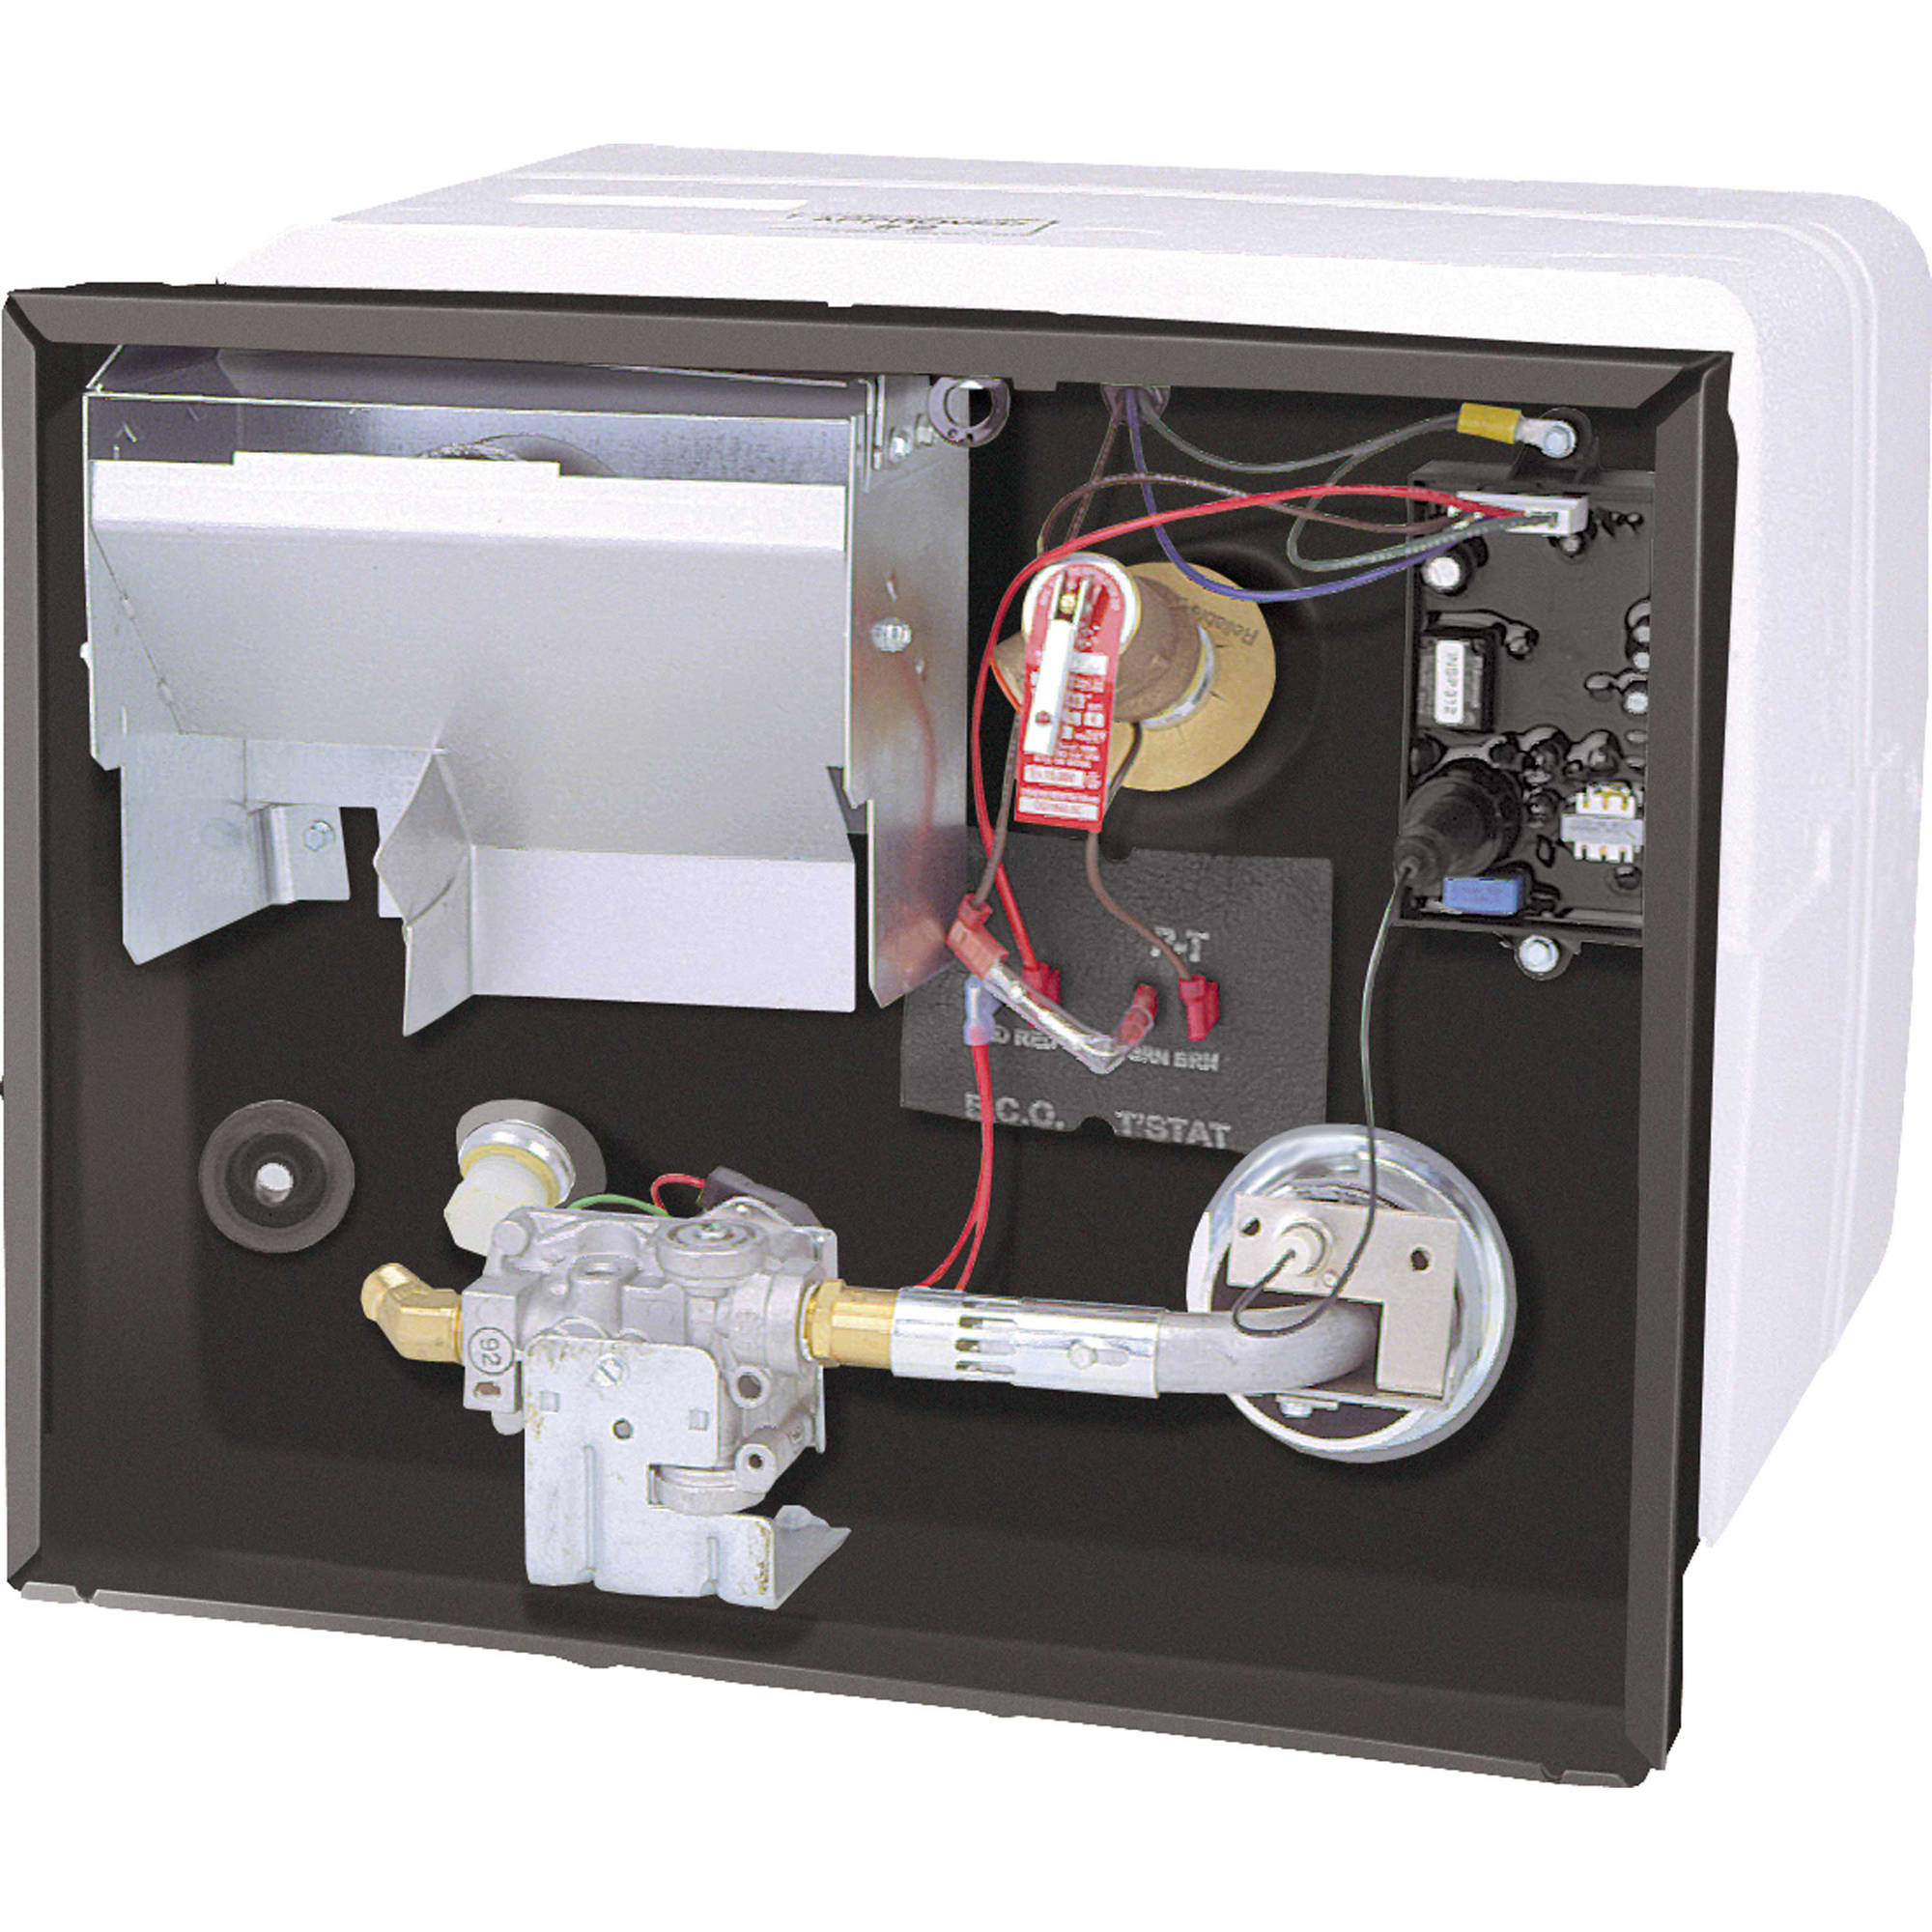 Atwood Electronic Ignition Water Heater by Atwood Mobile